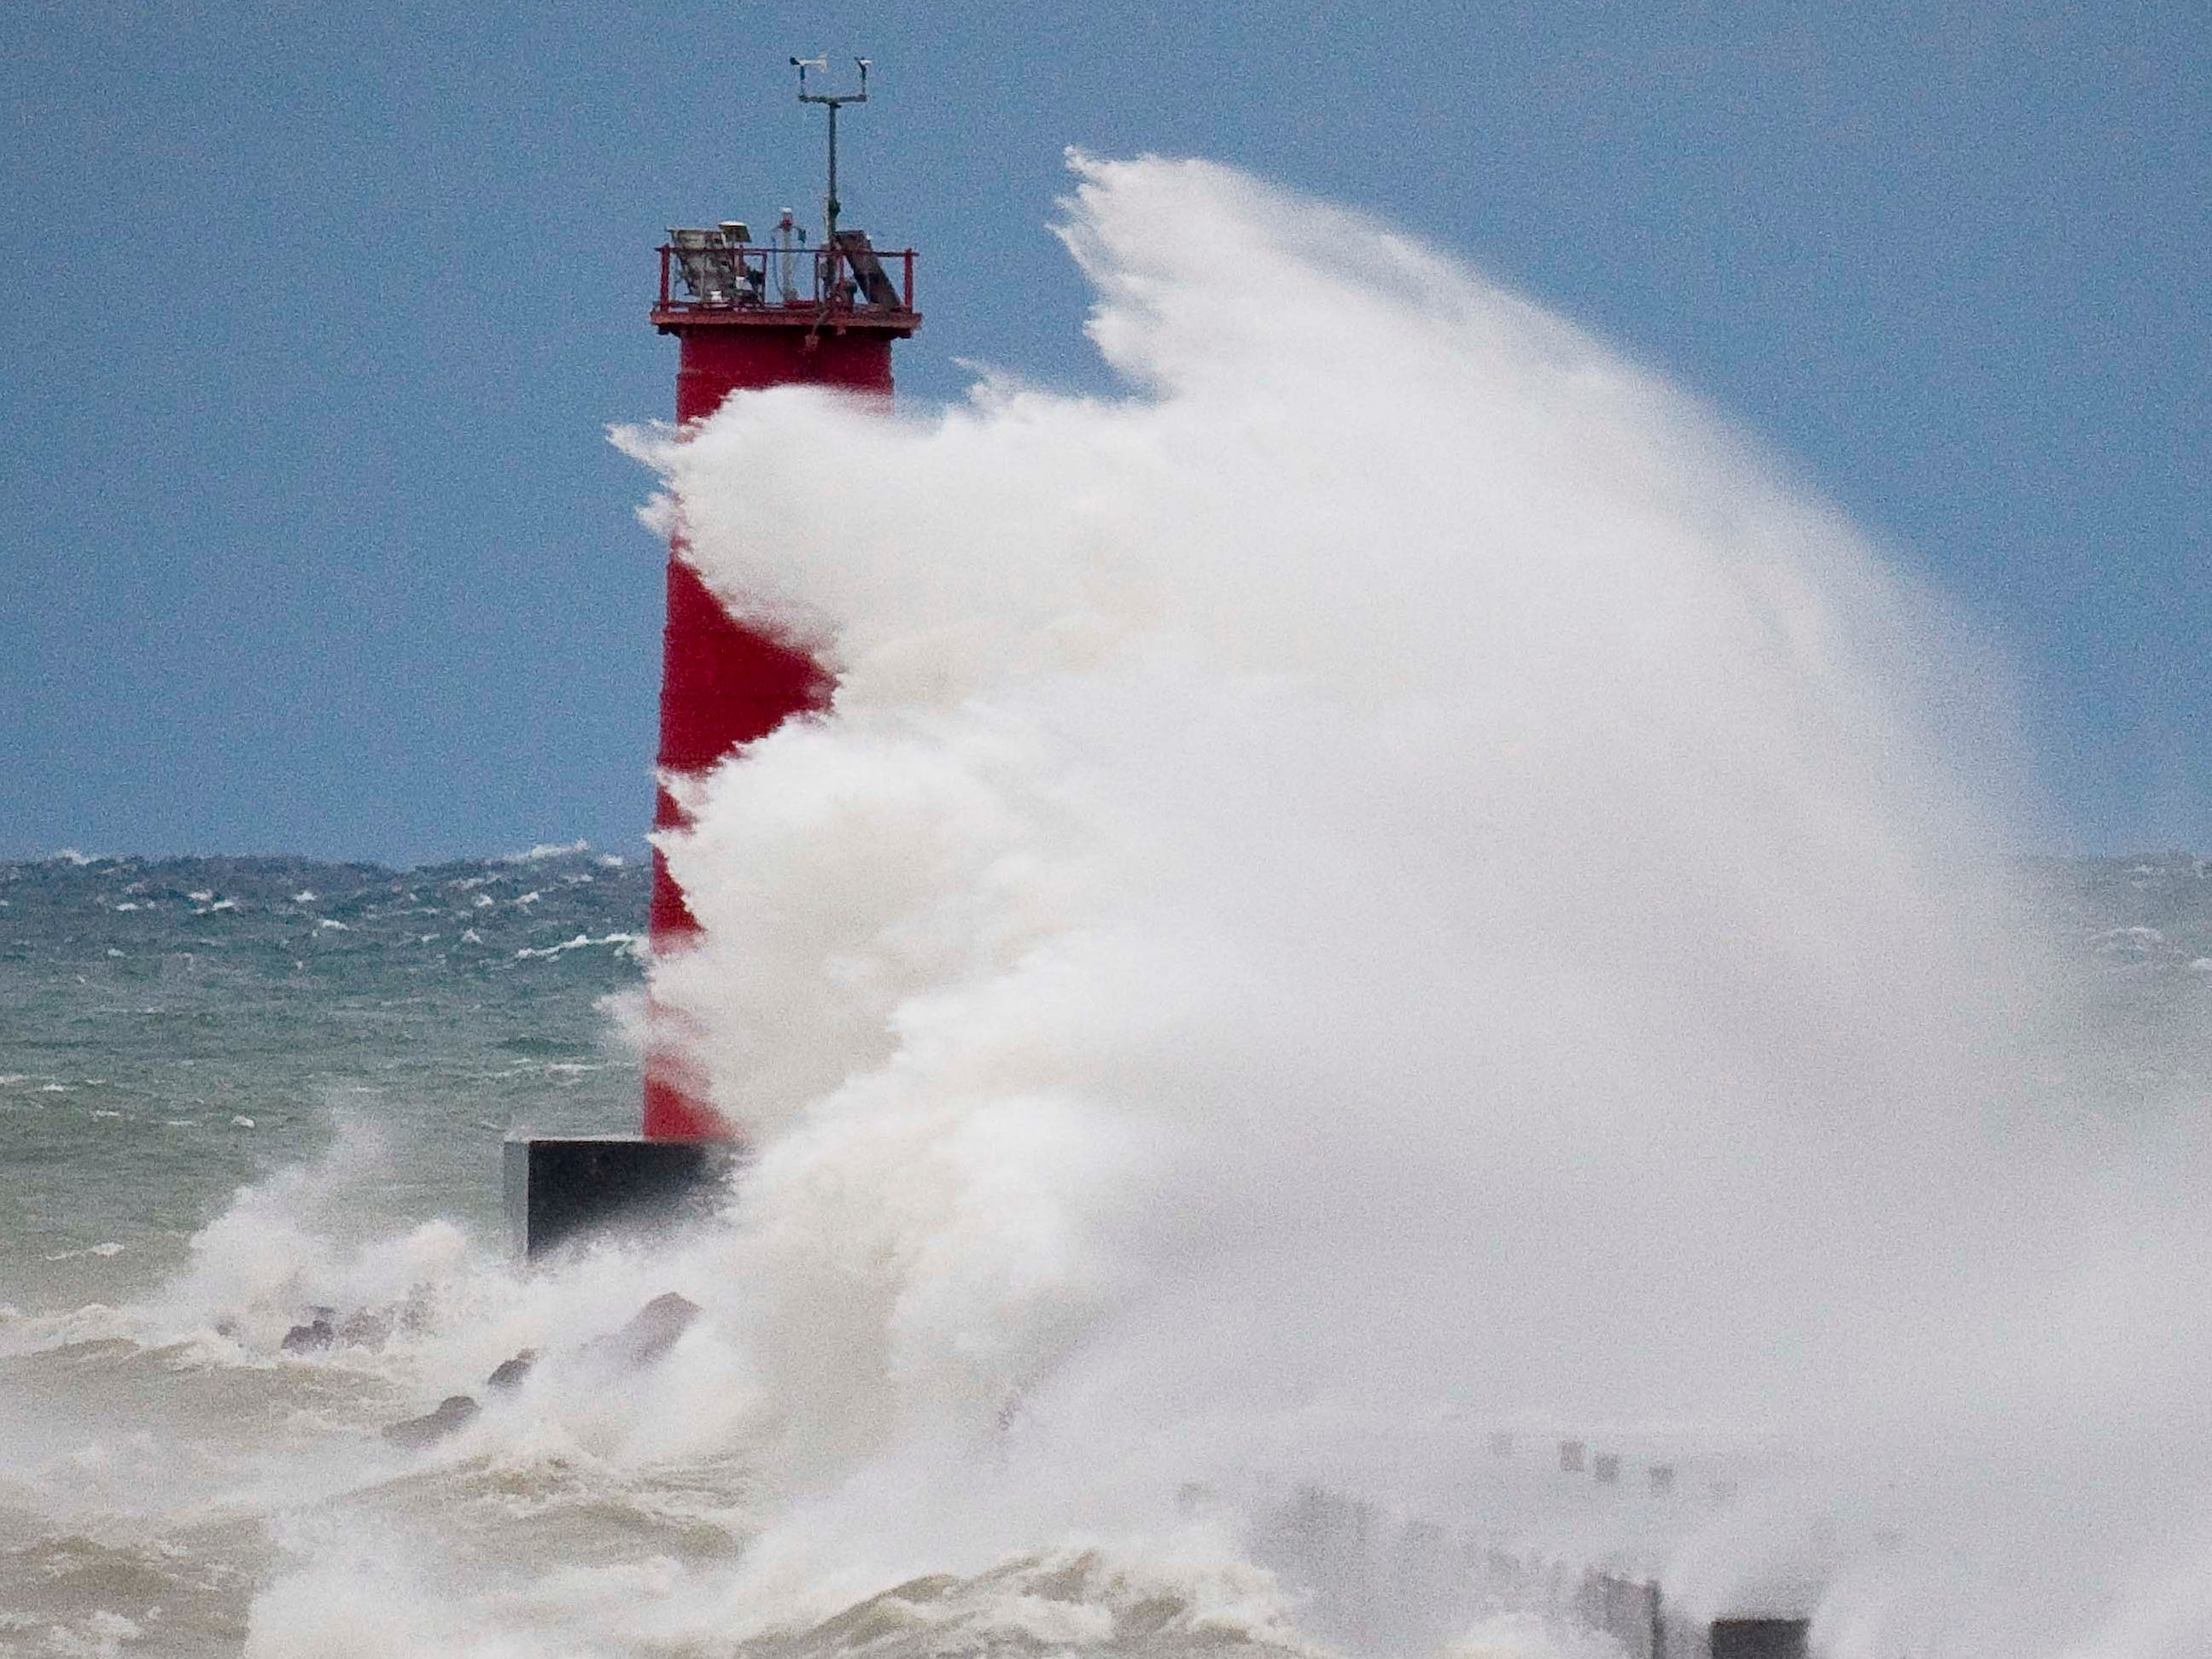 Strong winds blow waves taller than the Sheboygan lighthouse Oct. 19, 2011, in Sheboygan, Wis.  FILE PHOTO